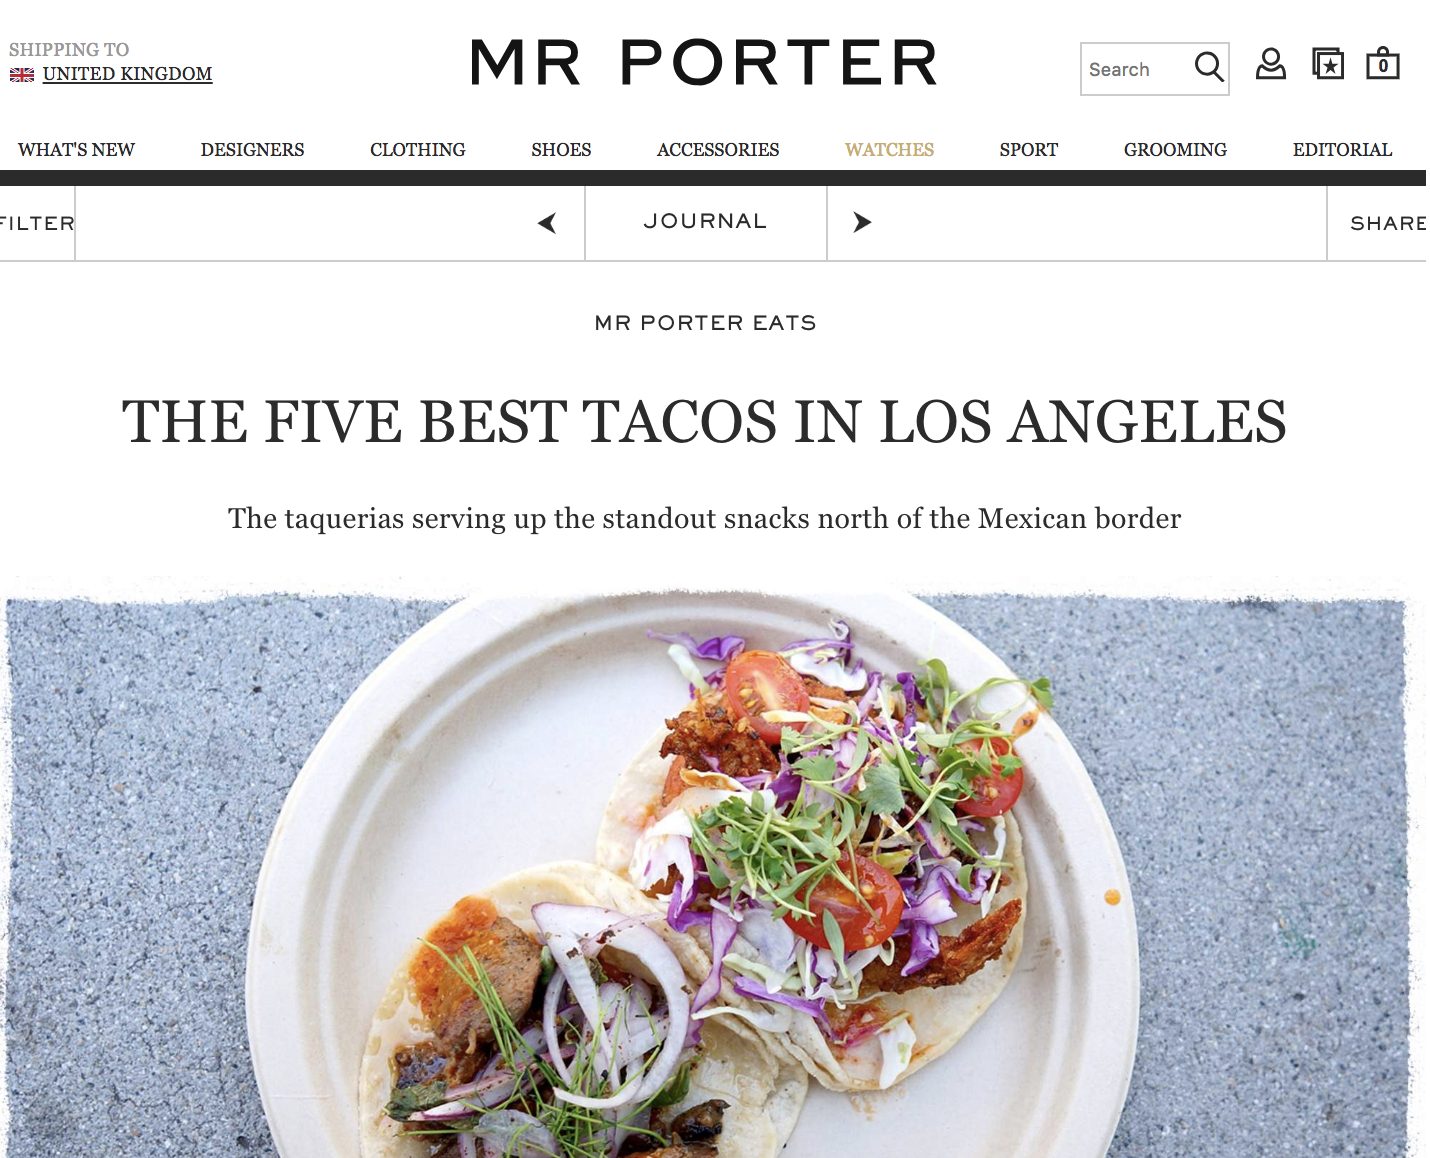 2018: Mr. Porter - Five Best Tacos in Los Angeles